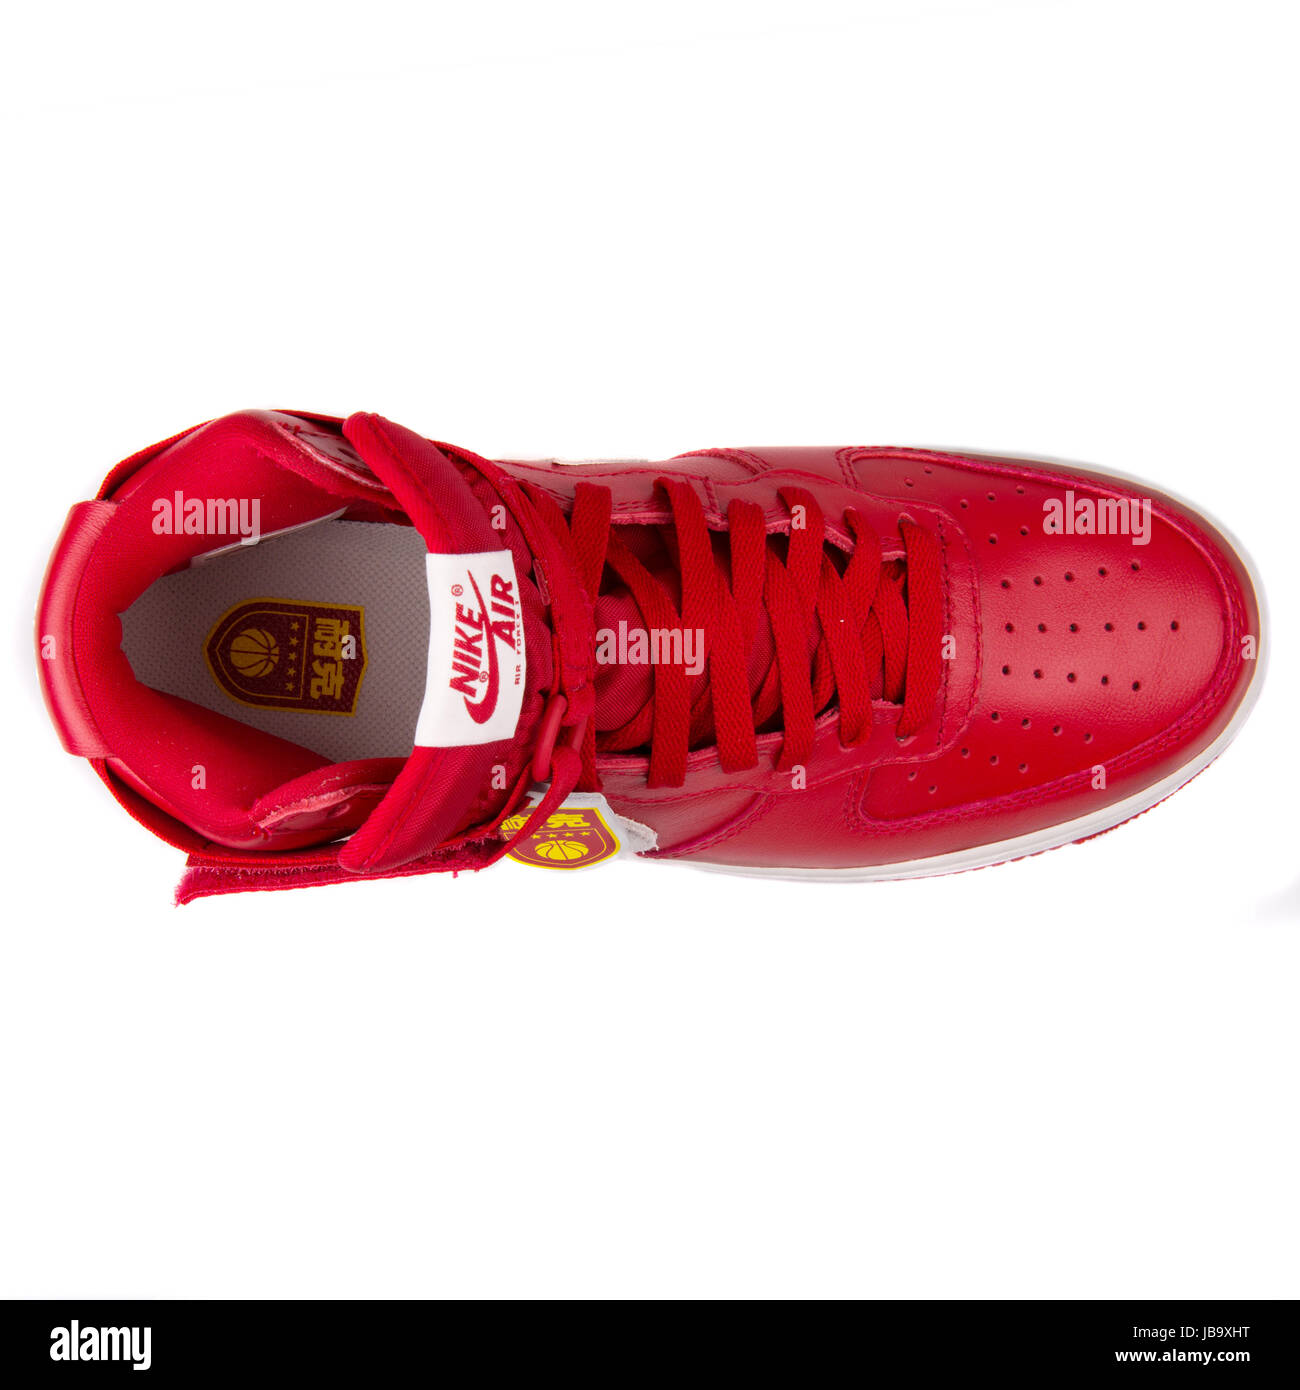 9182fb54 Nike Air Force 1 Hi Retro QS Gym Red and Summit White China Exclusive Men's  Retro Basketball Shoes - 743546-600